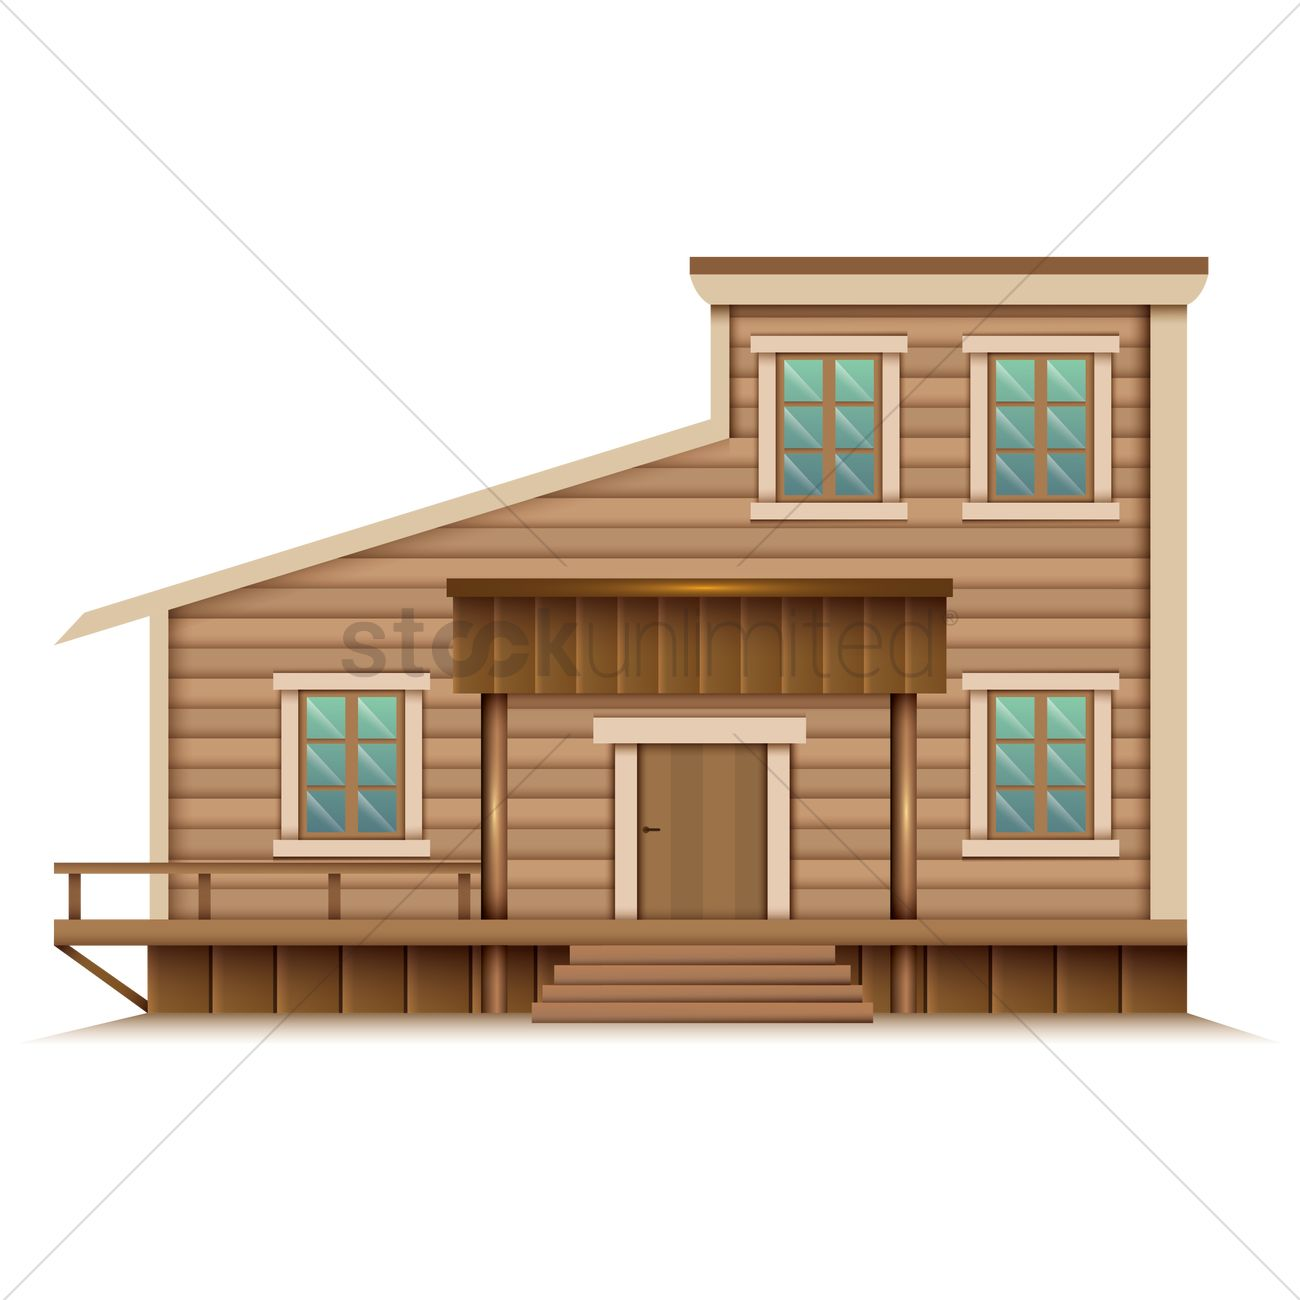 Cabin wooden house Vector Image - 1920458 | StockUnlimited on wooden home designs, creativity and design, wooden house software, house plans kerala home design, light hardwood floors living room design, wooden house photography, new indian home design, wooden house exterior design, country house architecture design, small wooden house design, glass house architecture design, wooden house windows, wooden house painting, wooden house plans design, beach house architecture design, small house architecture design, wooden house layout, future home house design, wooden frame house, wooden house installation,